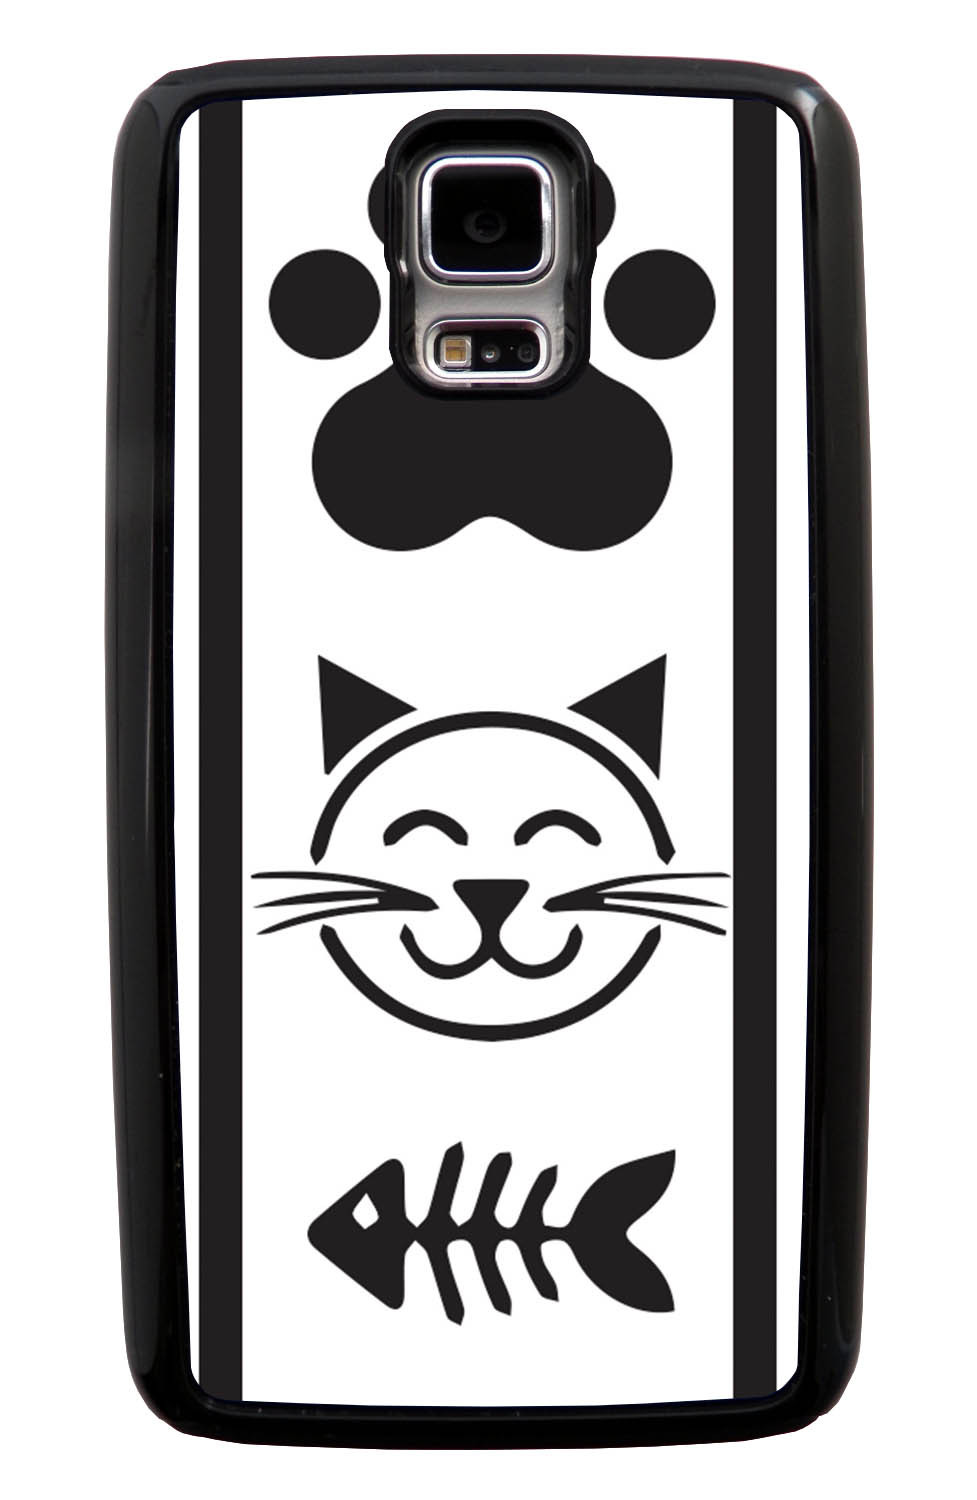 Samsung Galaxy S5 / SV Cat Case - Black Cat Icons on White - Simple Stencils Cutout - Black Tough Hybrid Case